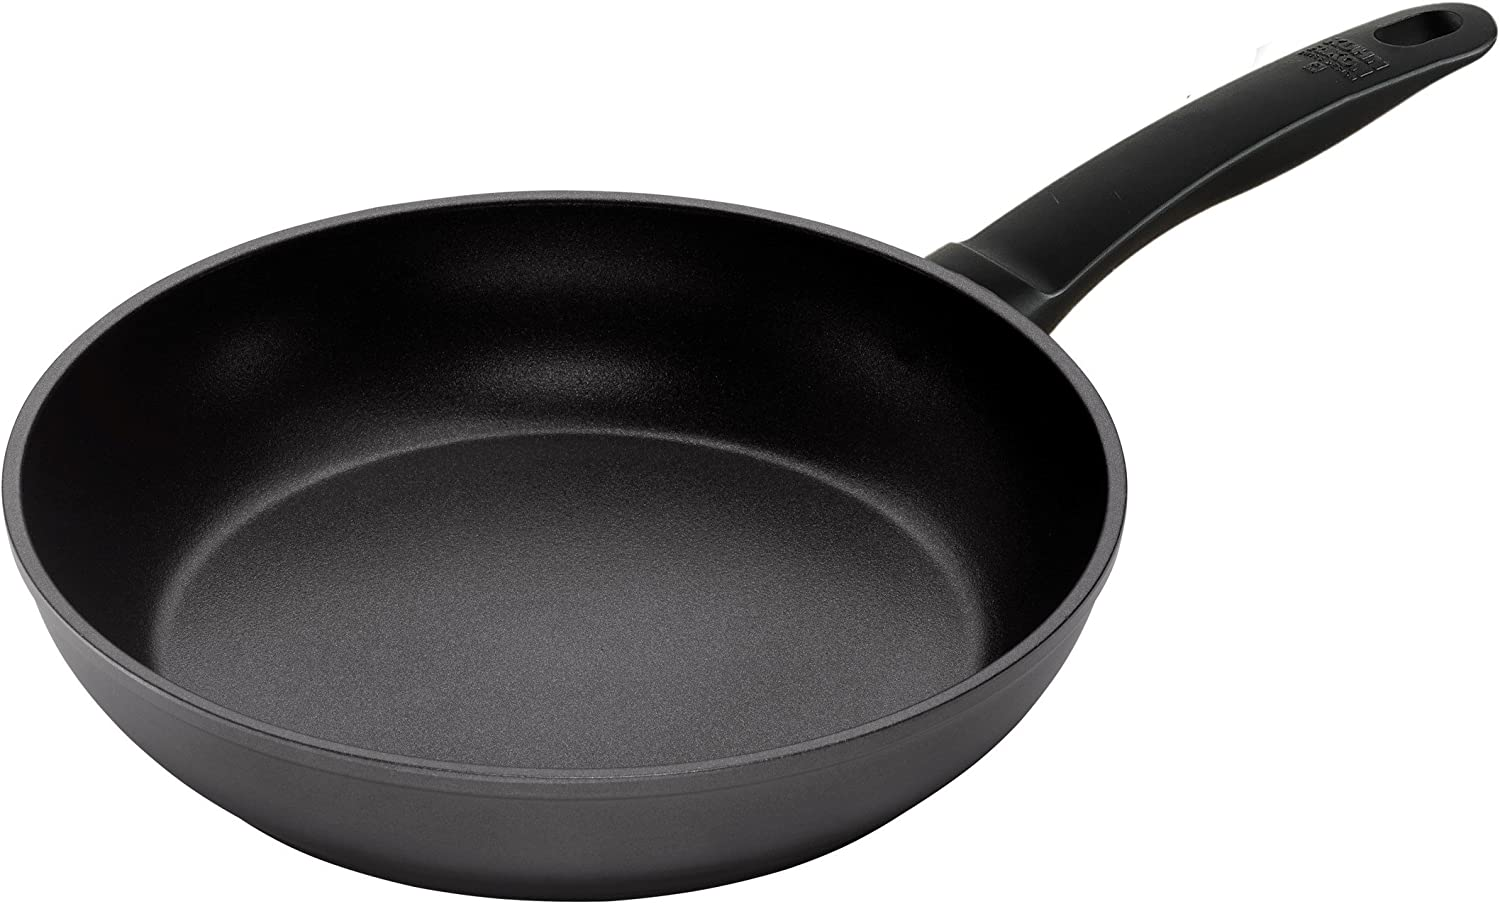 Aluminum Kuhn Rikon Easy Induction Non-Stick Frying Pan Black 9.5-Inch